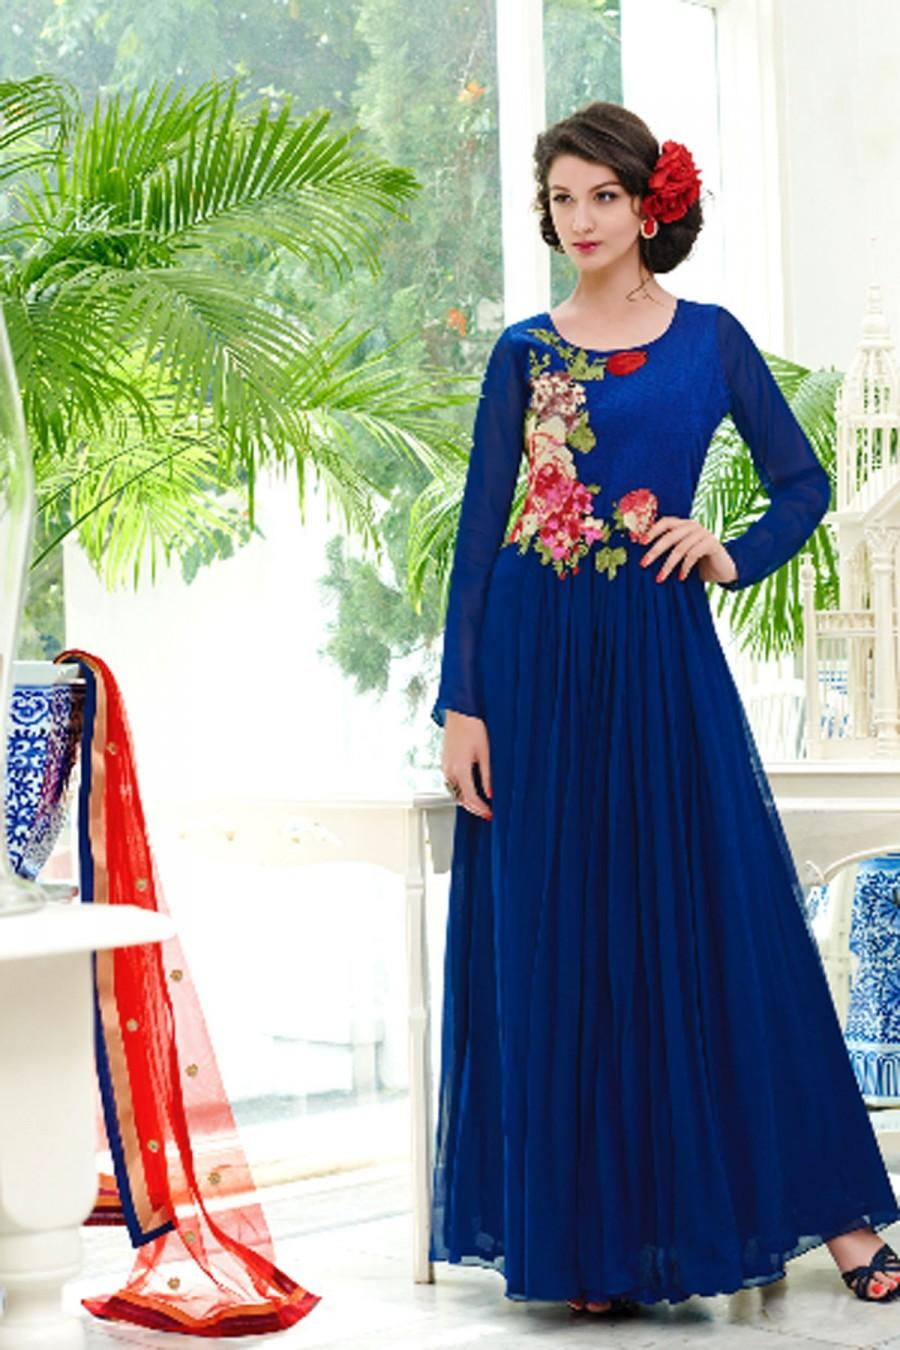 Blue Lovely Pure Georgette Gown With Full Sleeves #2459115 - Weddbook